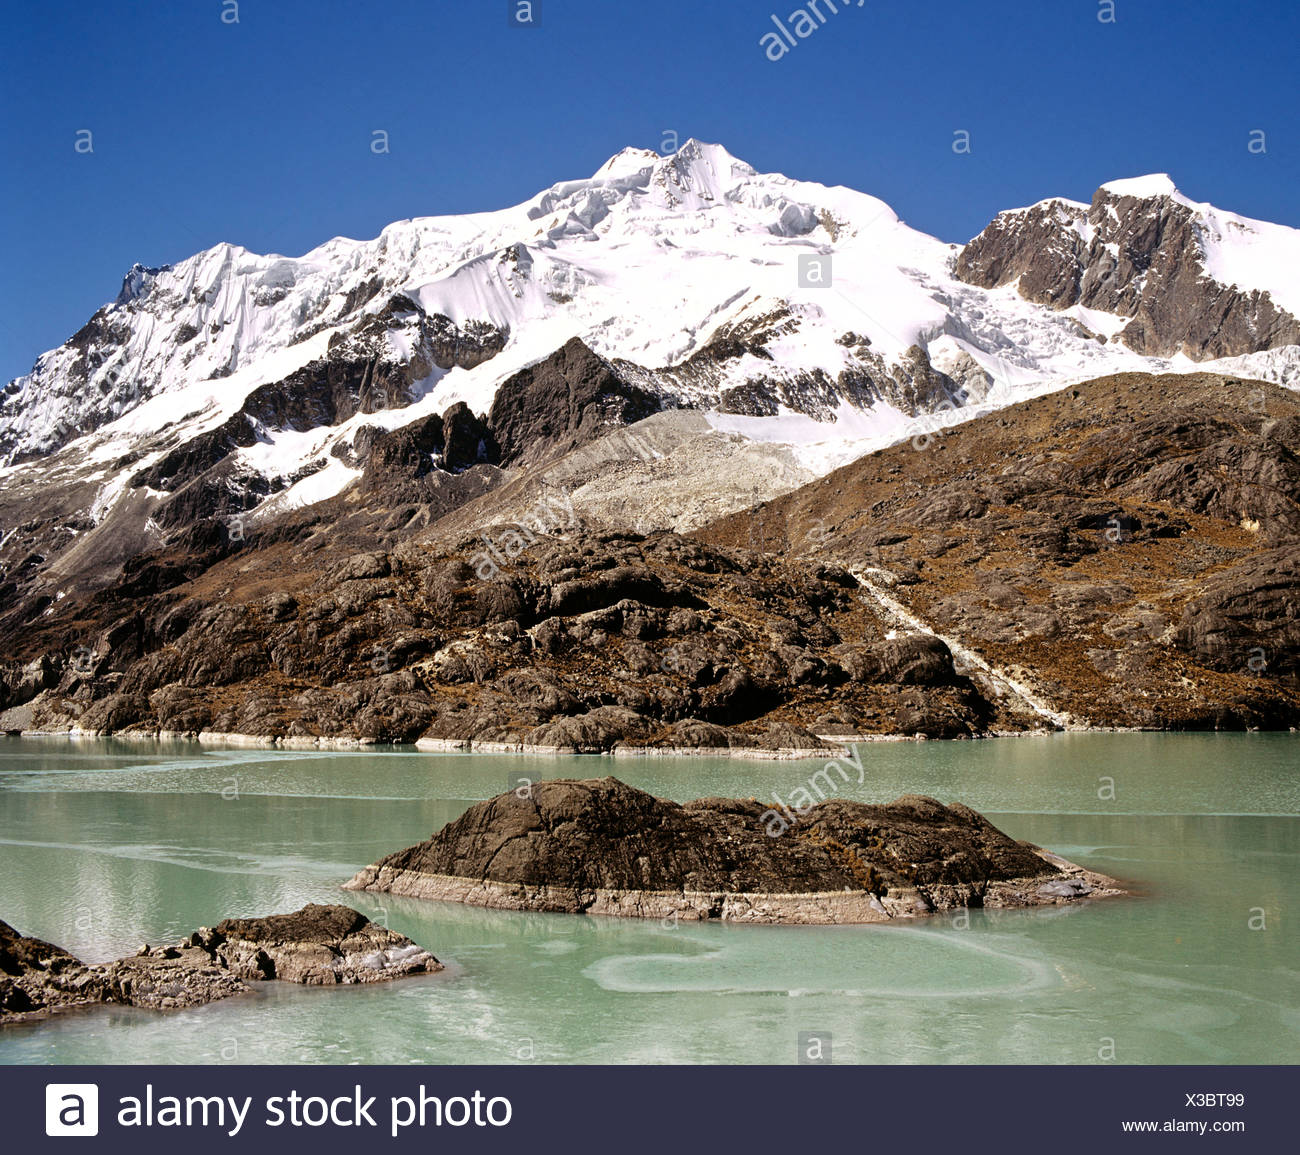 Mt. Huayna Potosi viewed from the reservoir at Zongo Pass, Cordillera Real, La Paz, the Andes, Bolivia - Stock Image